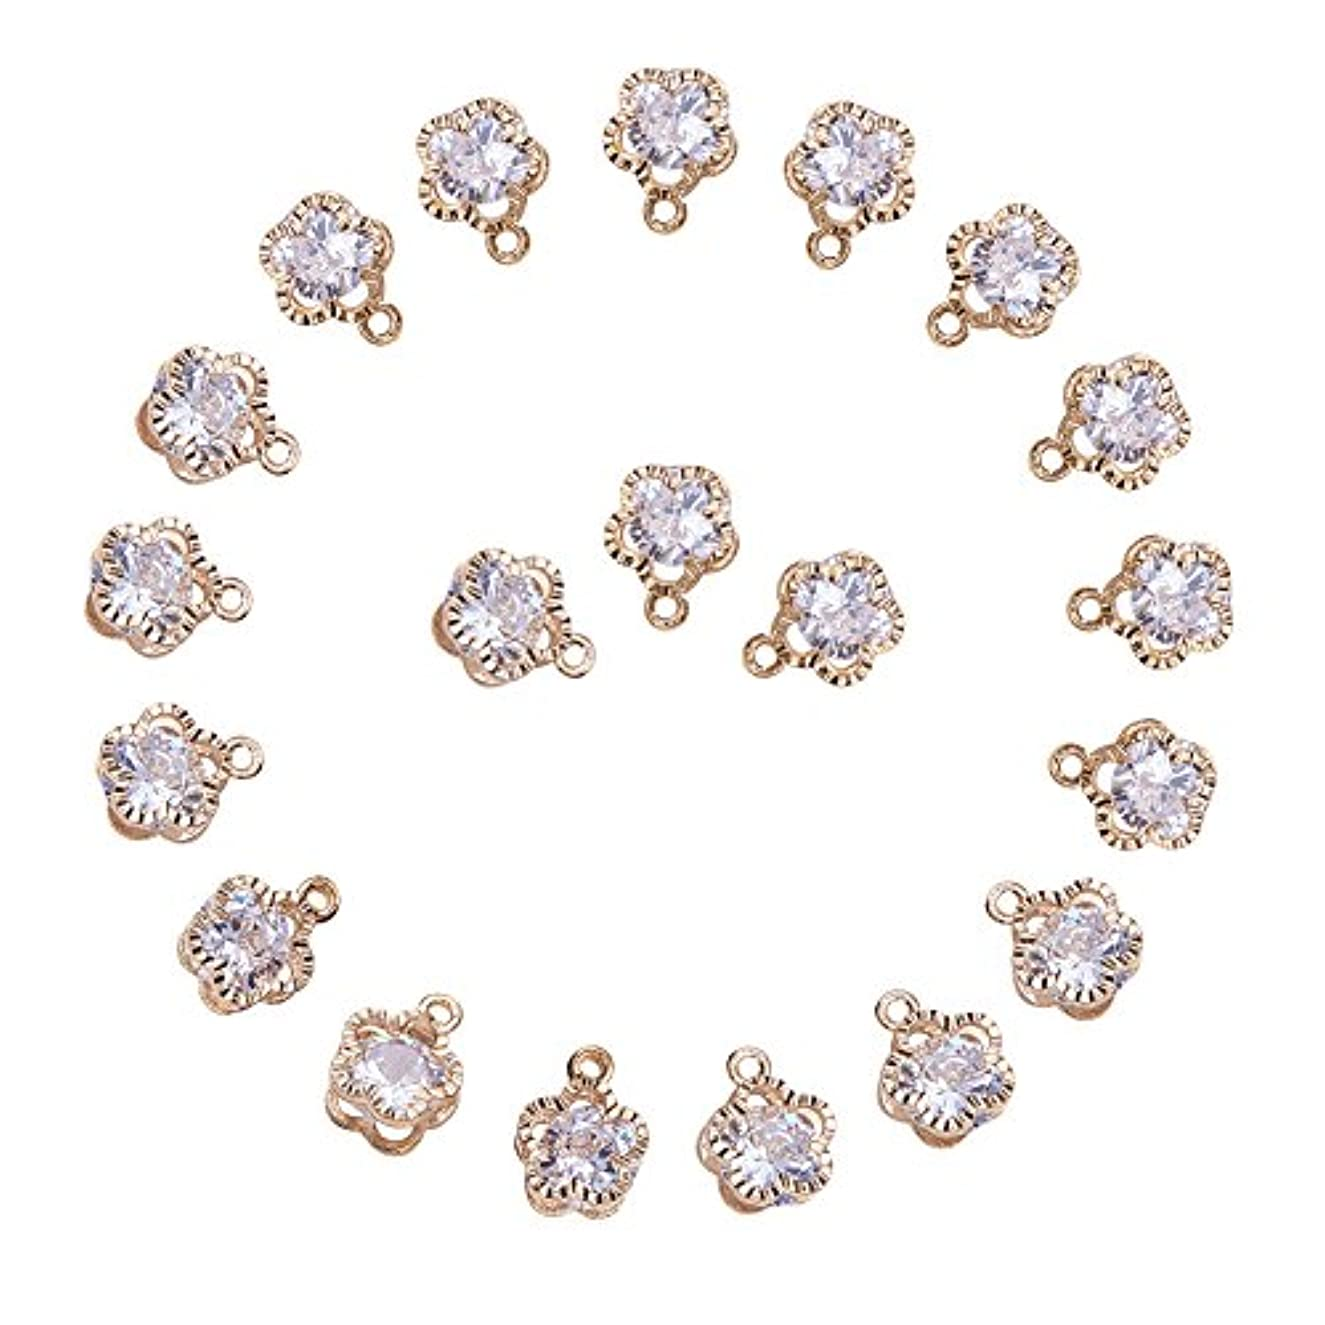 PandaHall 1Bag About 100 Pcs Cubic Zirconia Alloy Flower Shape Charms Sets for Jewelry Making Size 12x9x5mm KC Gold